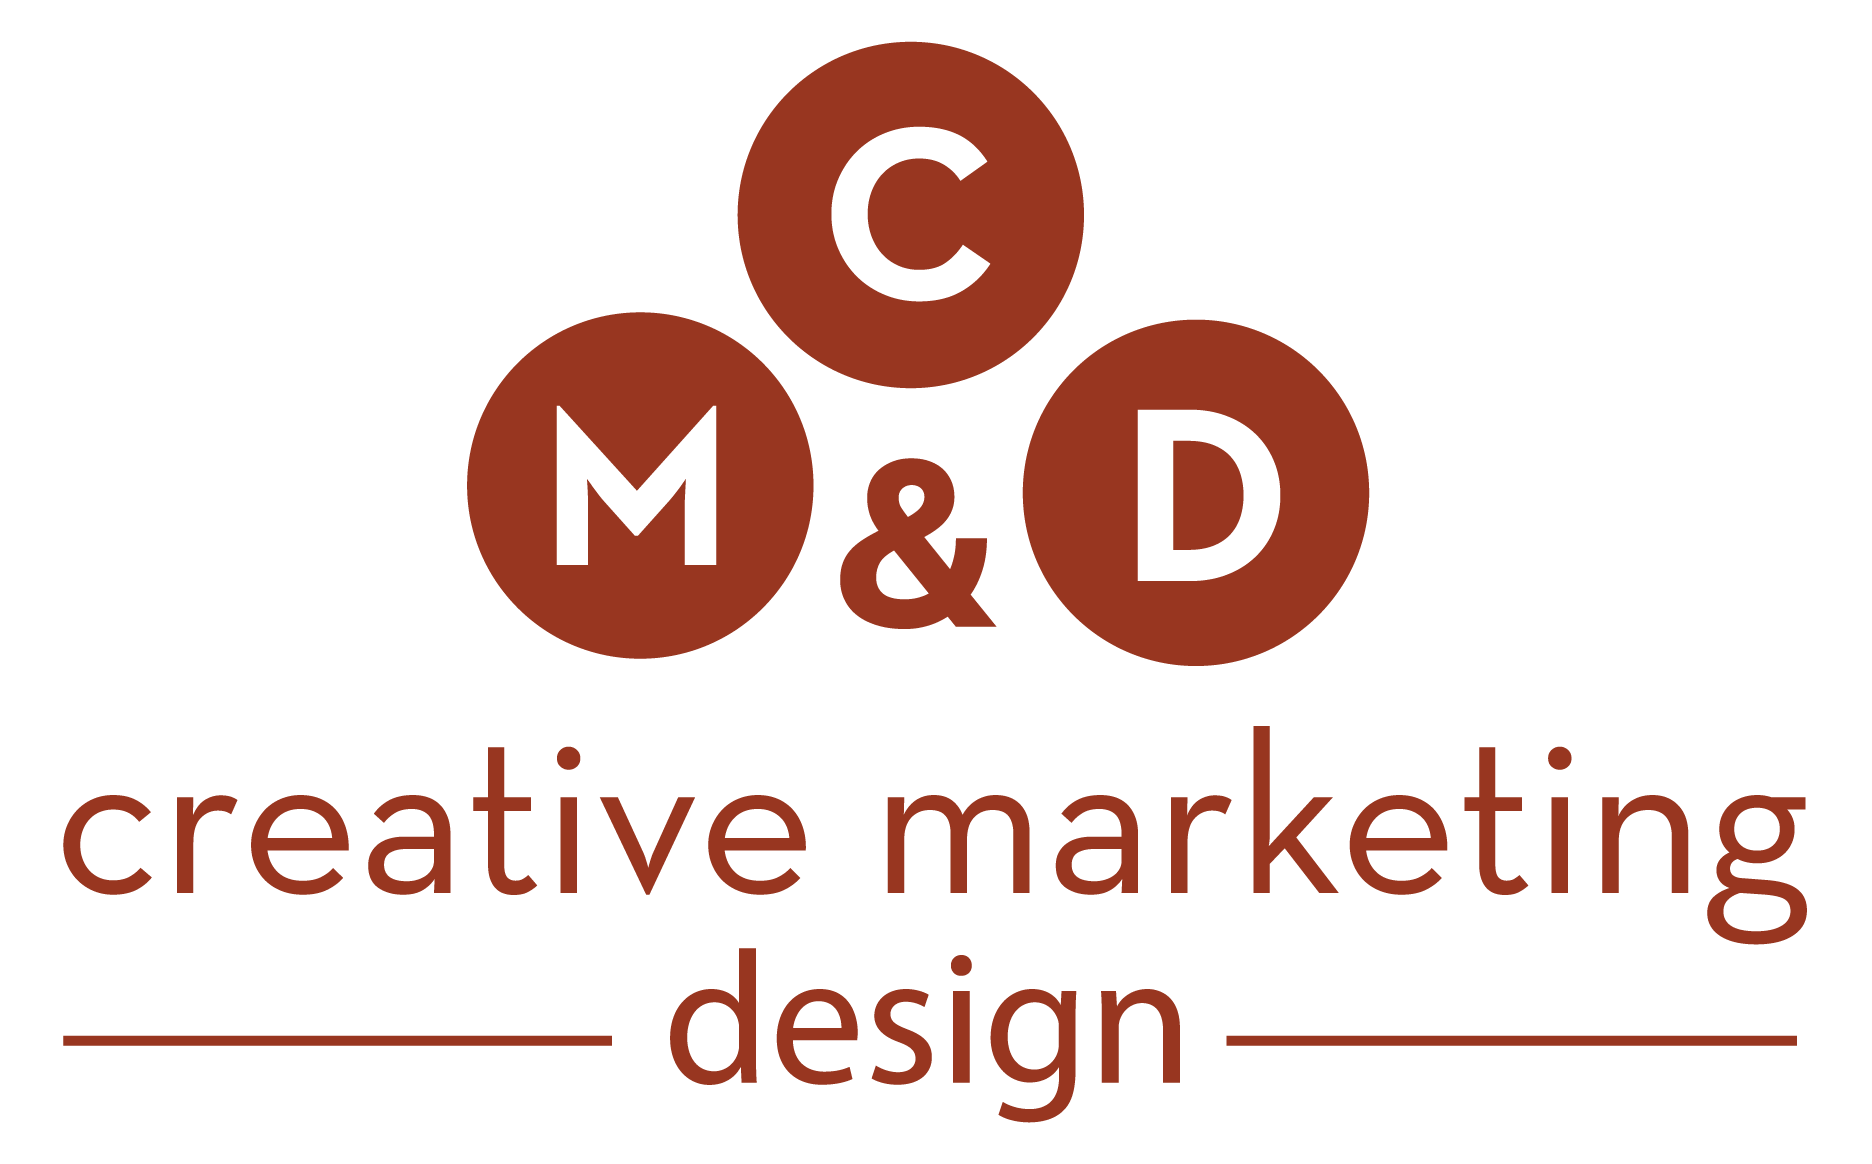 Creative Marketing & Design